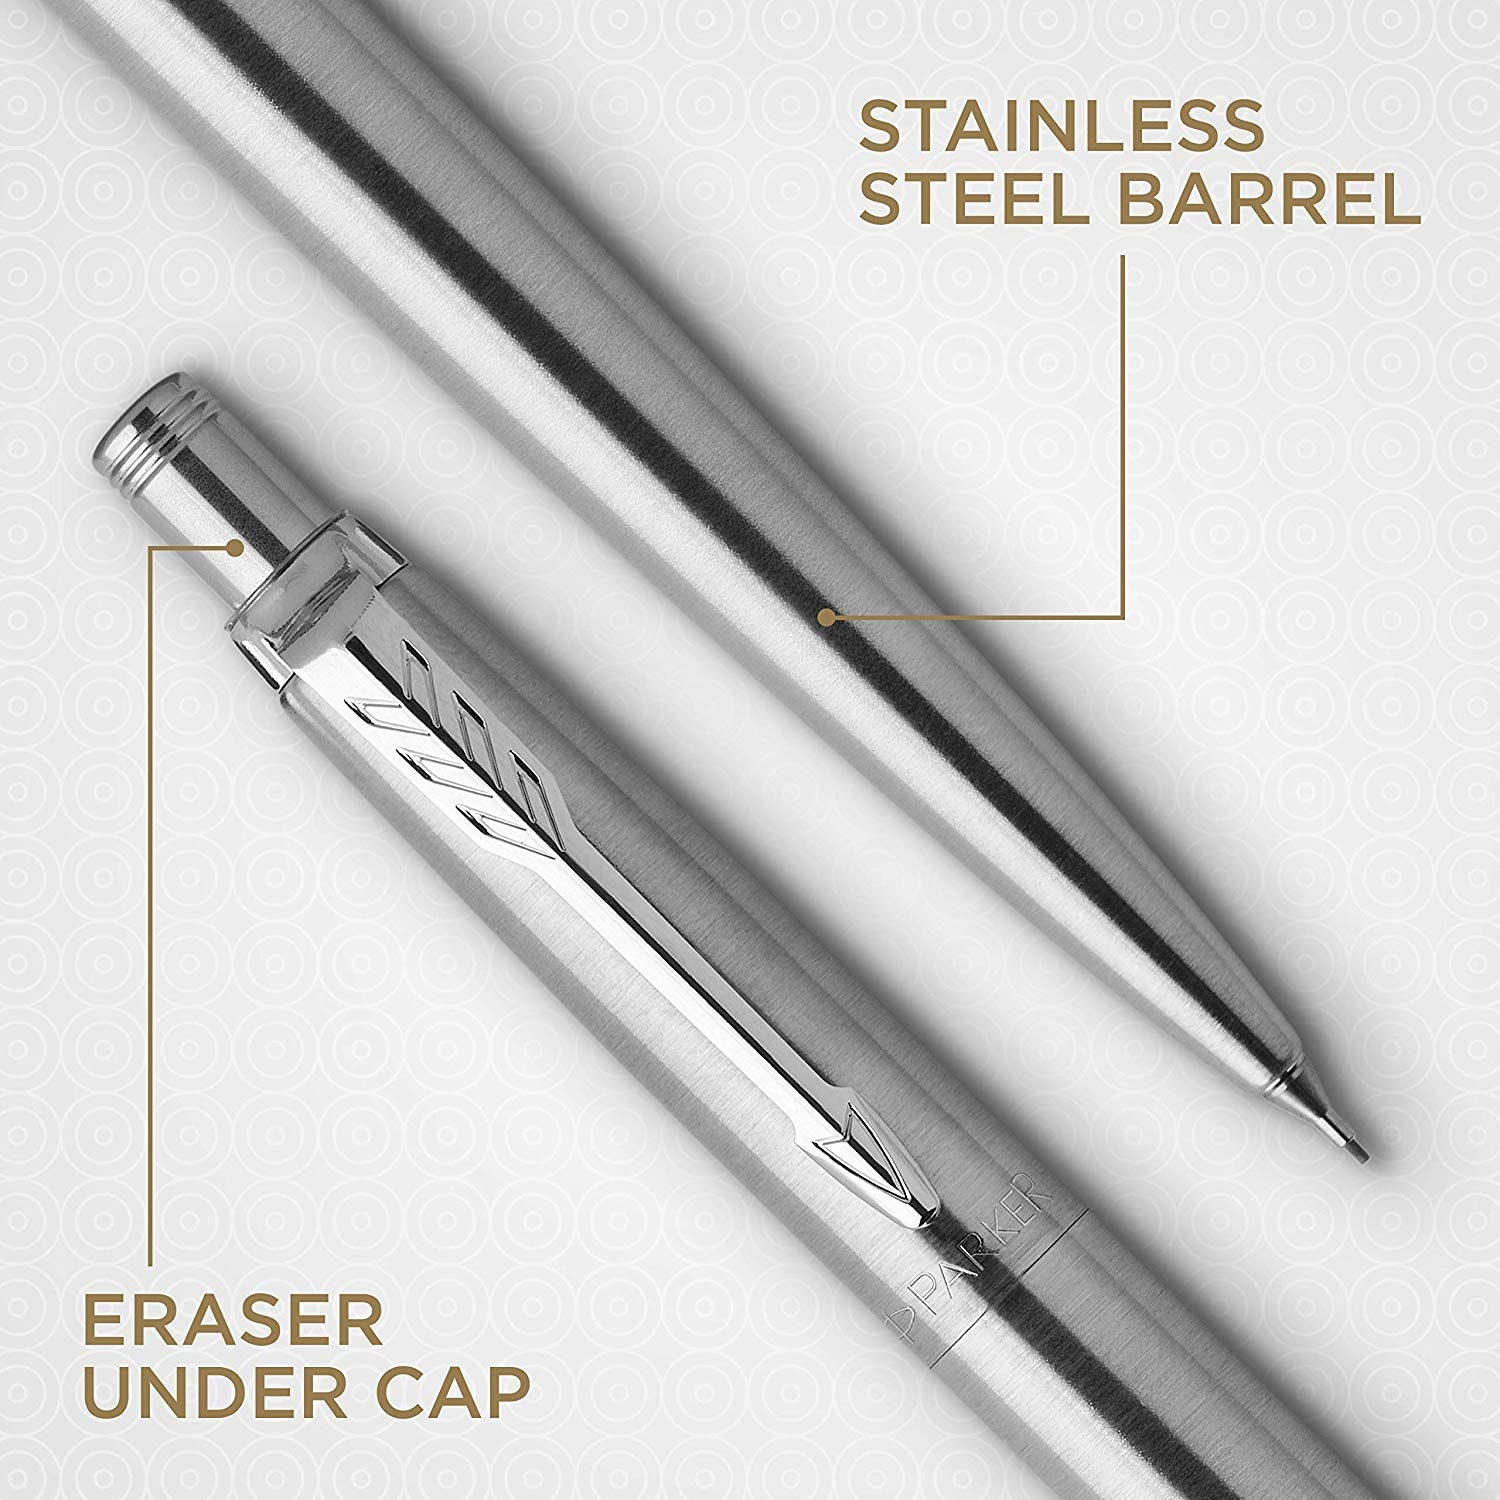 Gift Box Parker Jotter Rollerball Pen Fine Point Black Ink Stainless Steel with Chrome Trim